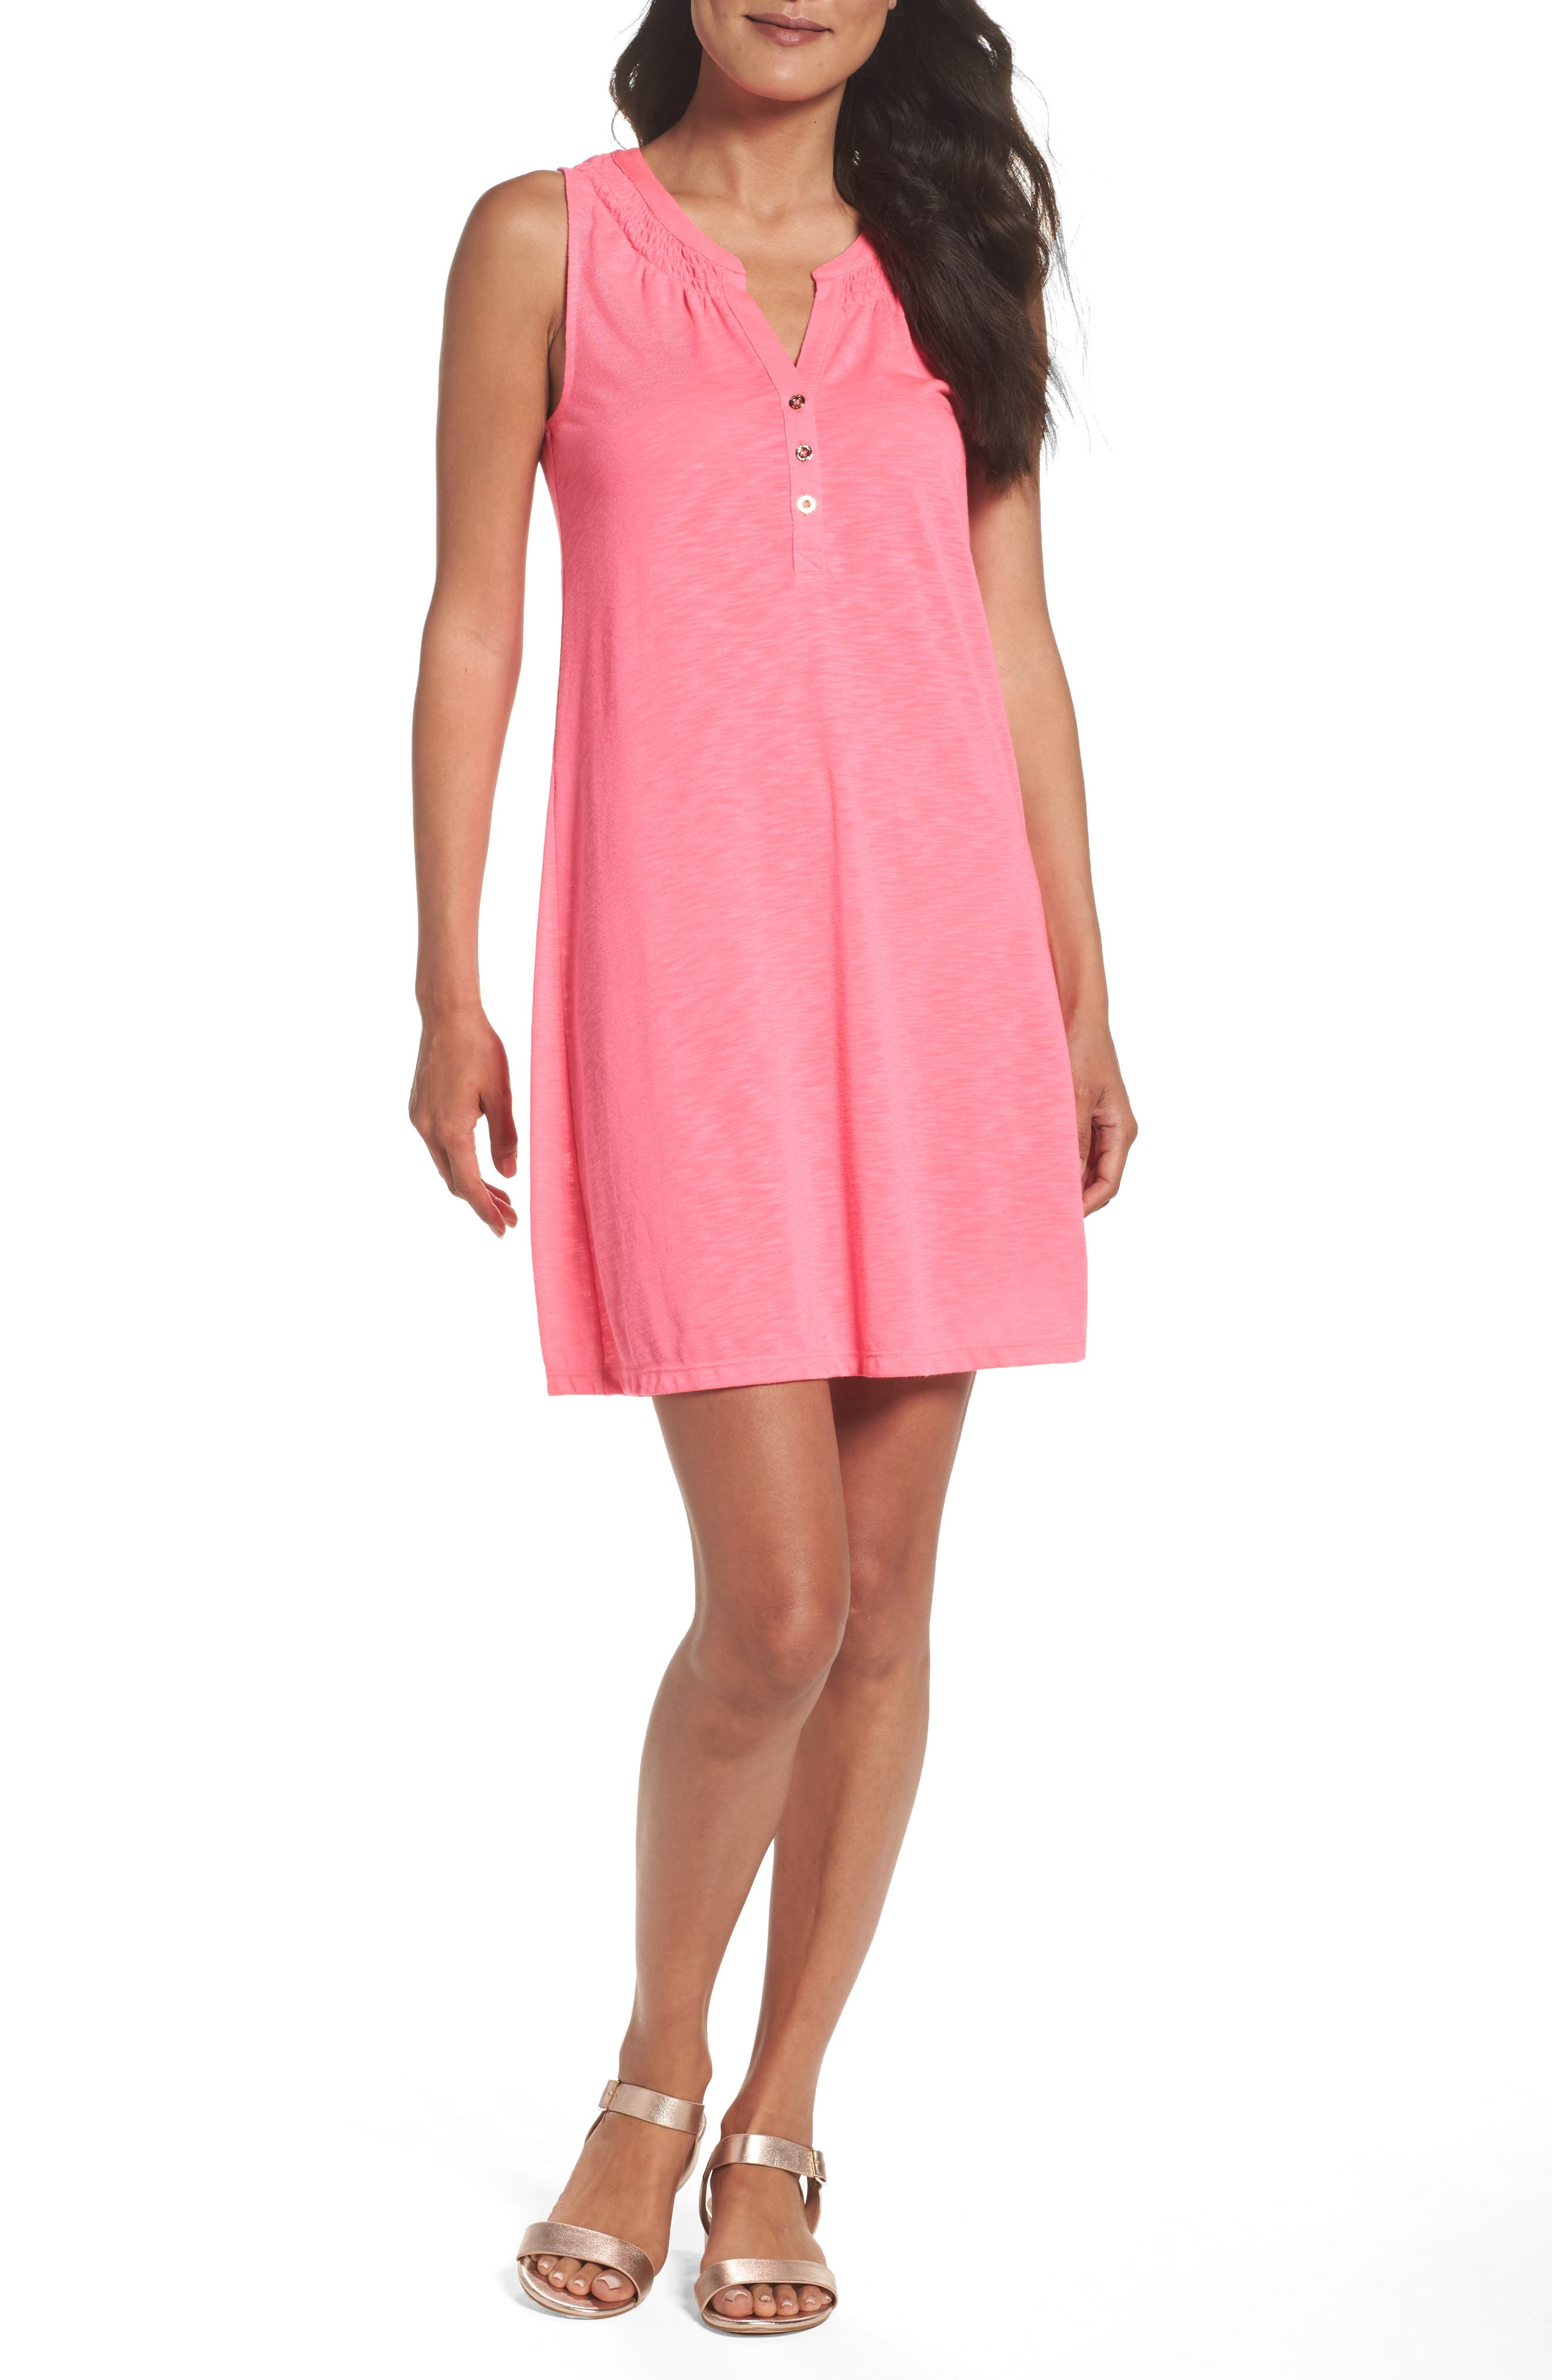 Alternate Image 1 Selected - Lilly Pulitzer® 'Essie' Cotton & Modal A-Line Dress